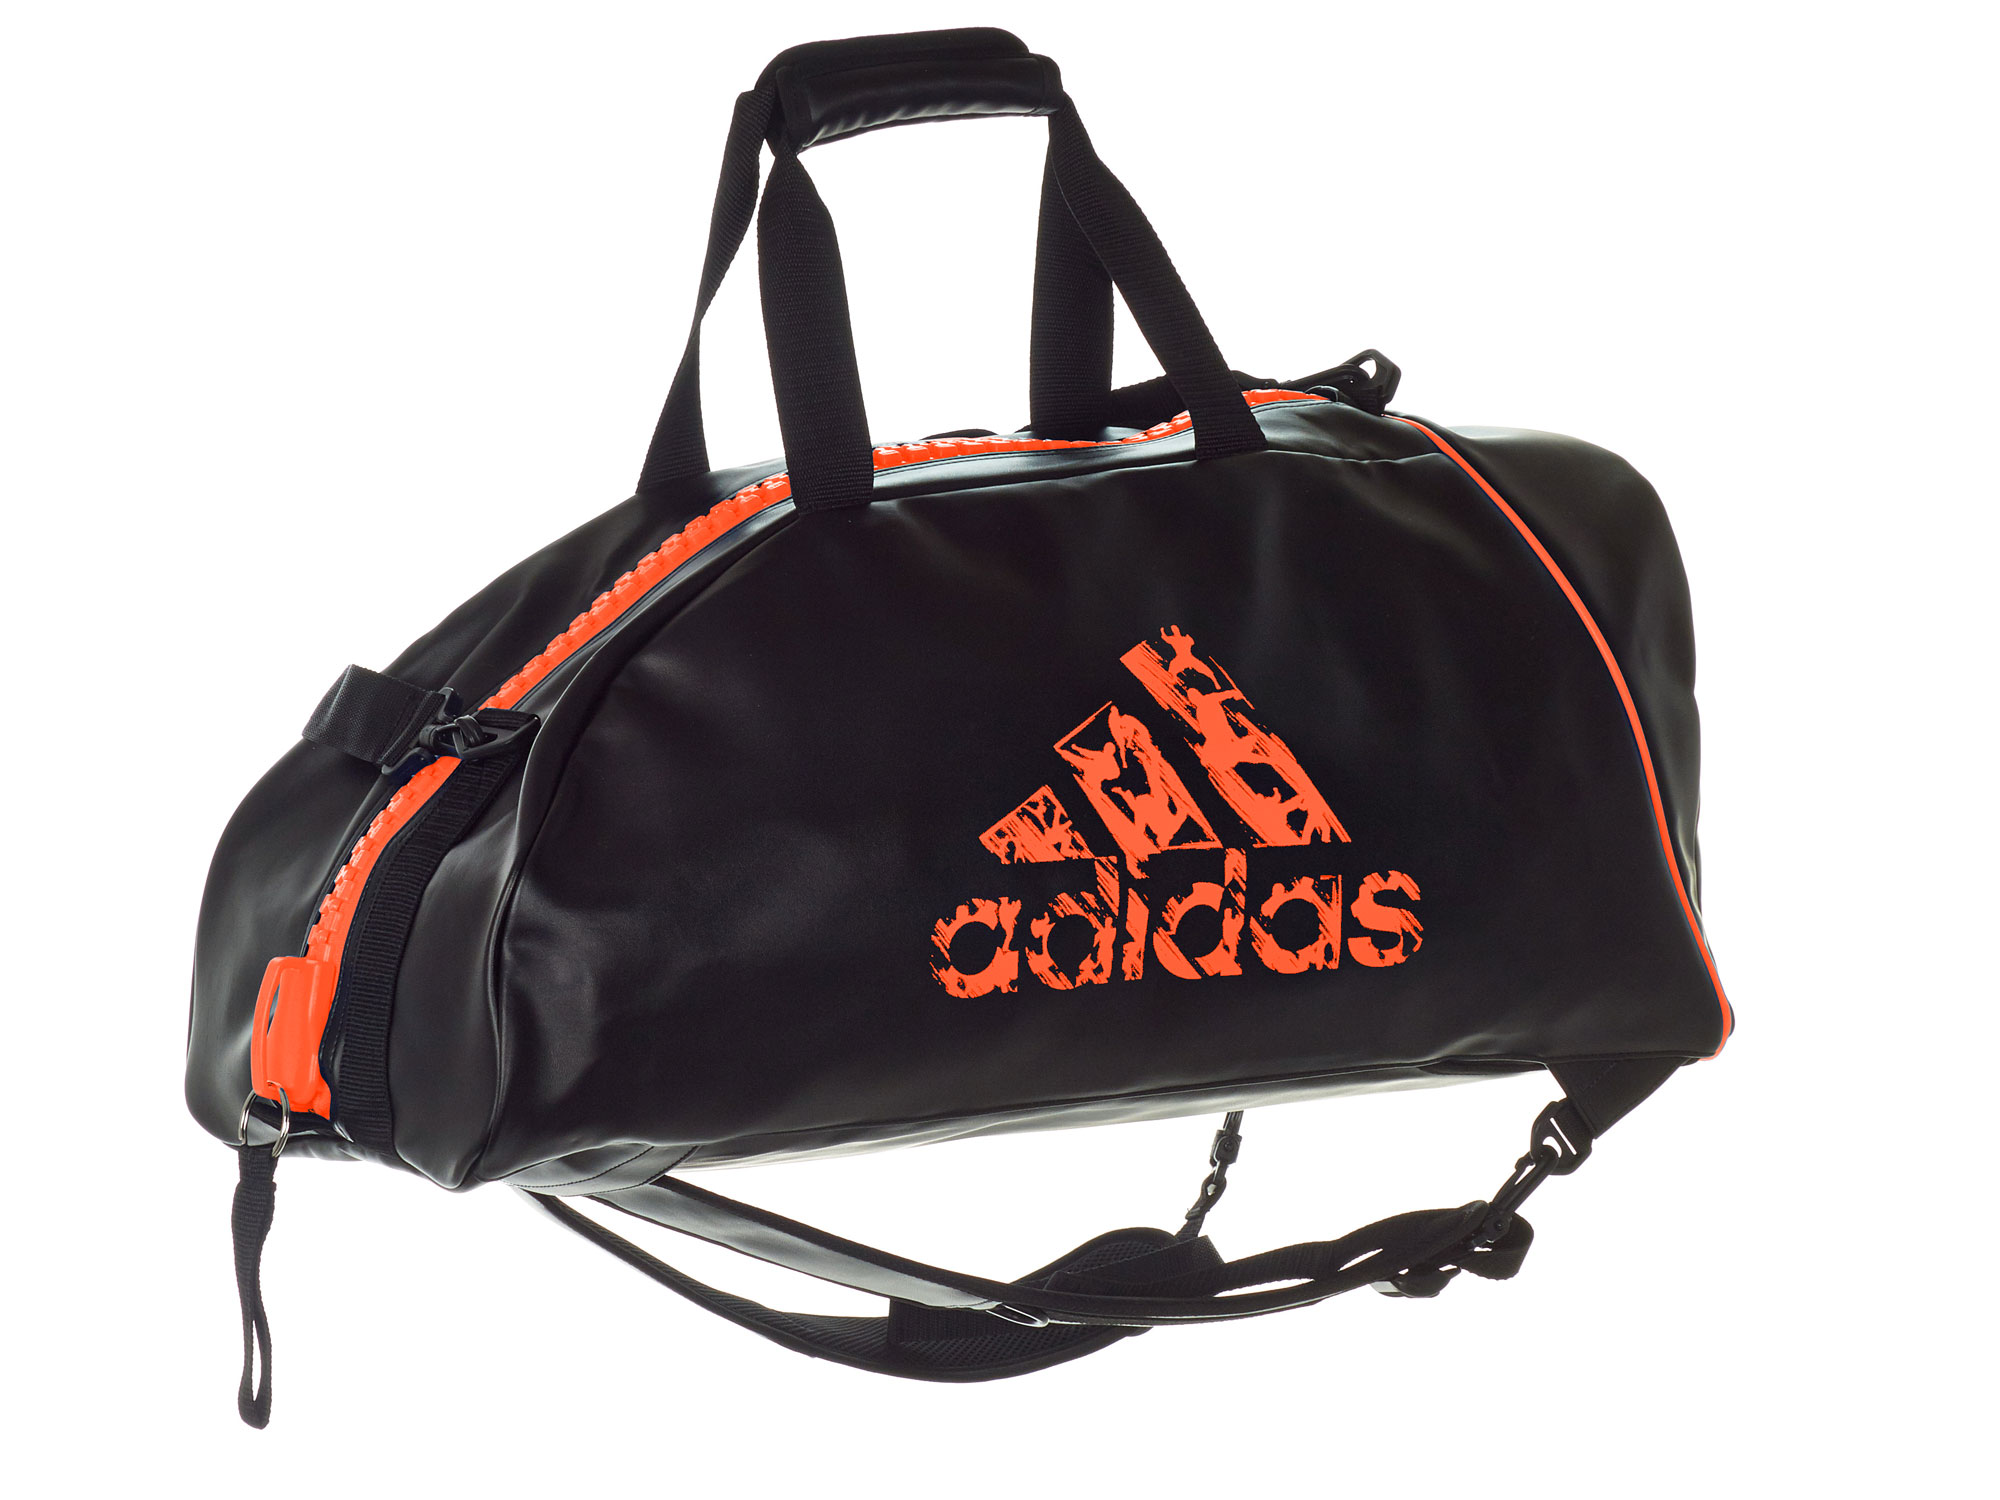 adidas rucksack tasche adiacc051 l schwarz orange kaufen. Black Bedroom Furniture Sets. Home Design Ideas